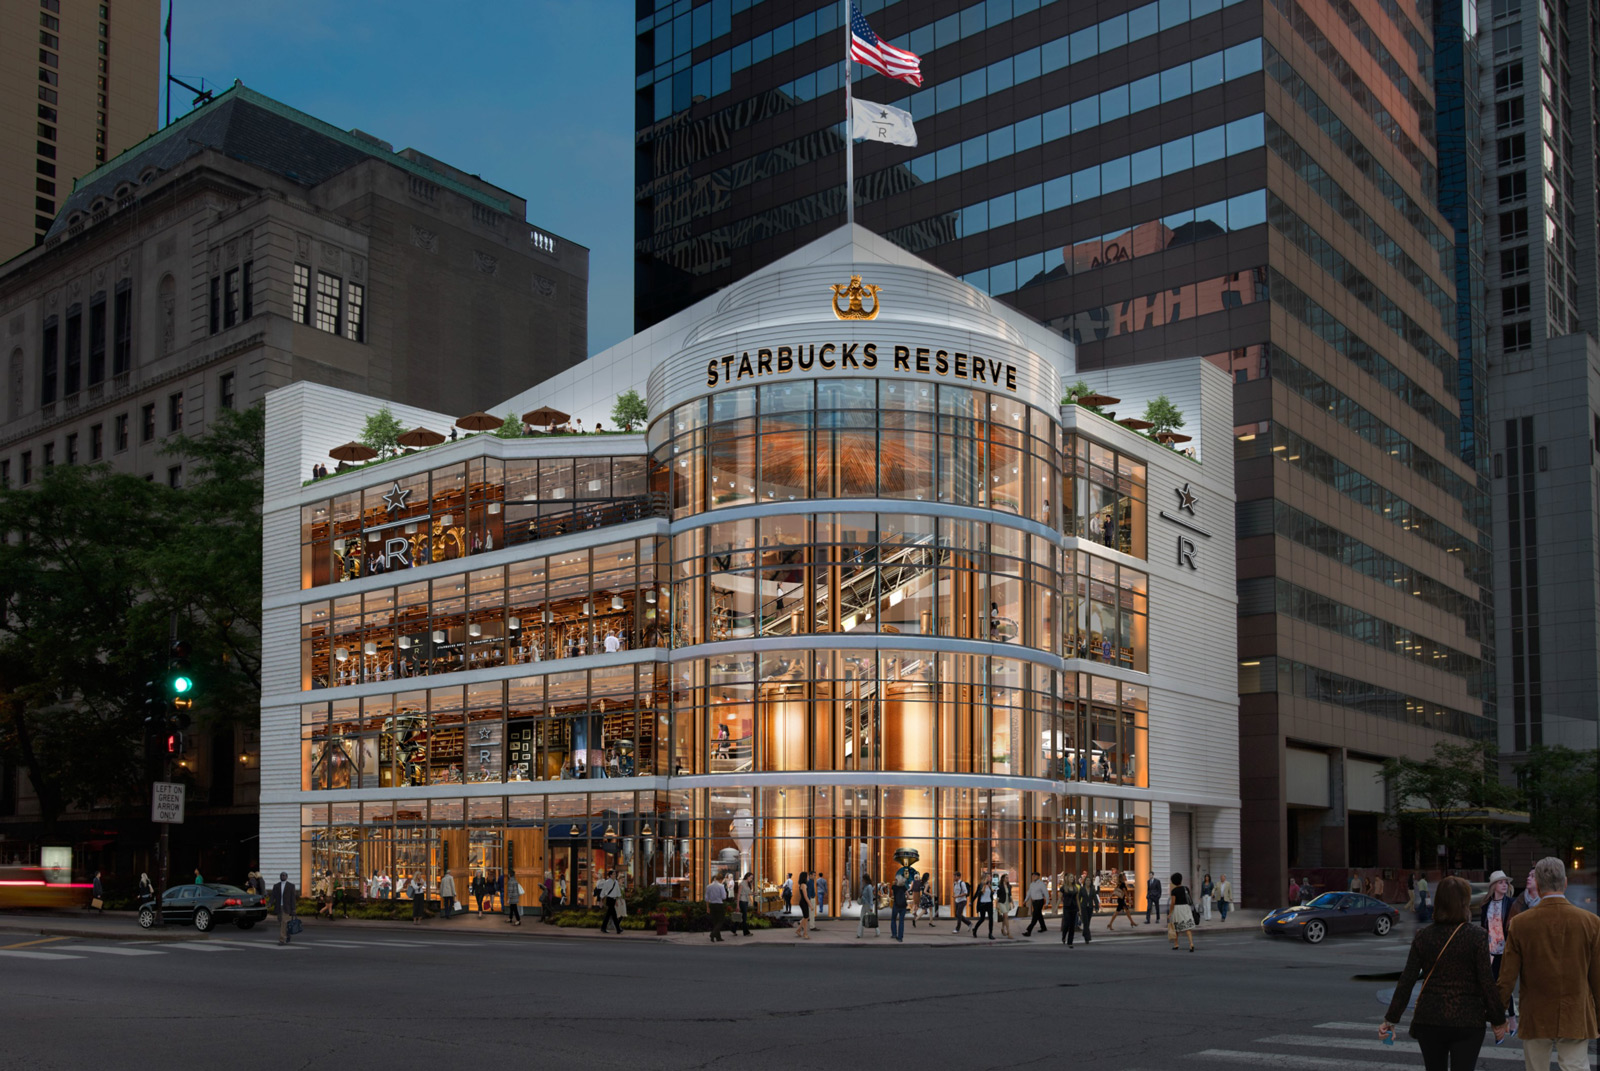 worlds largest starbucks to open in downtown chicago courtesy starbucks